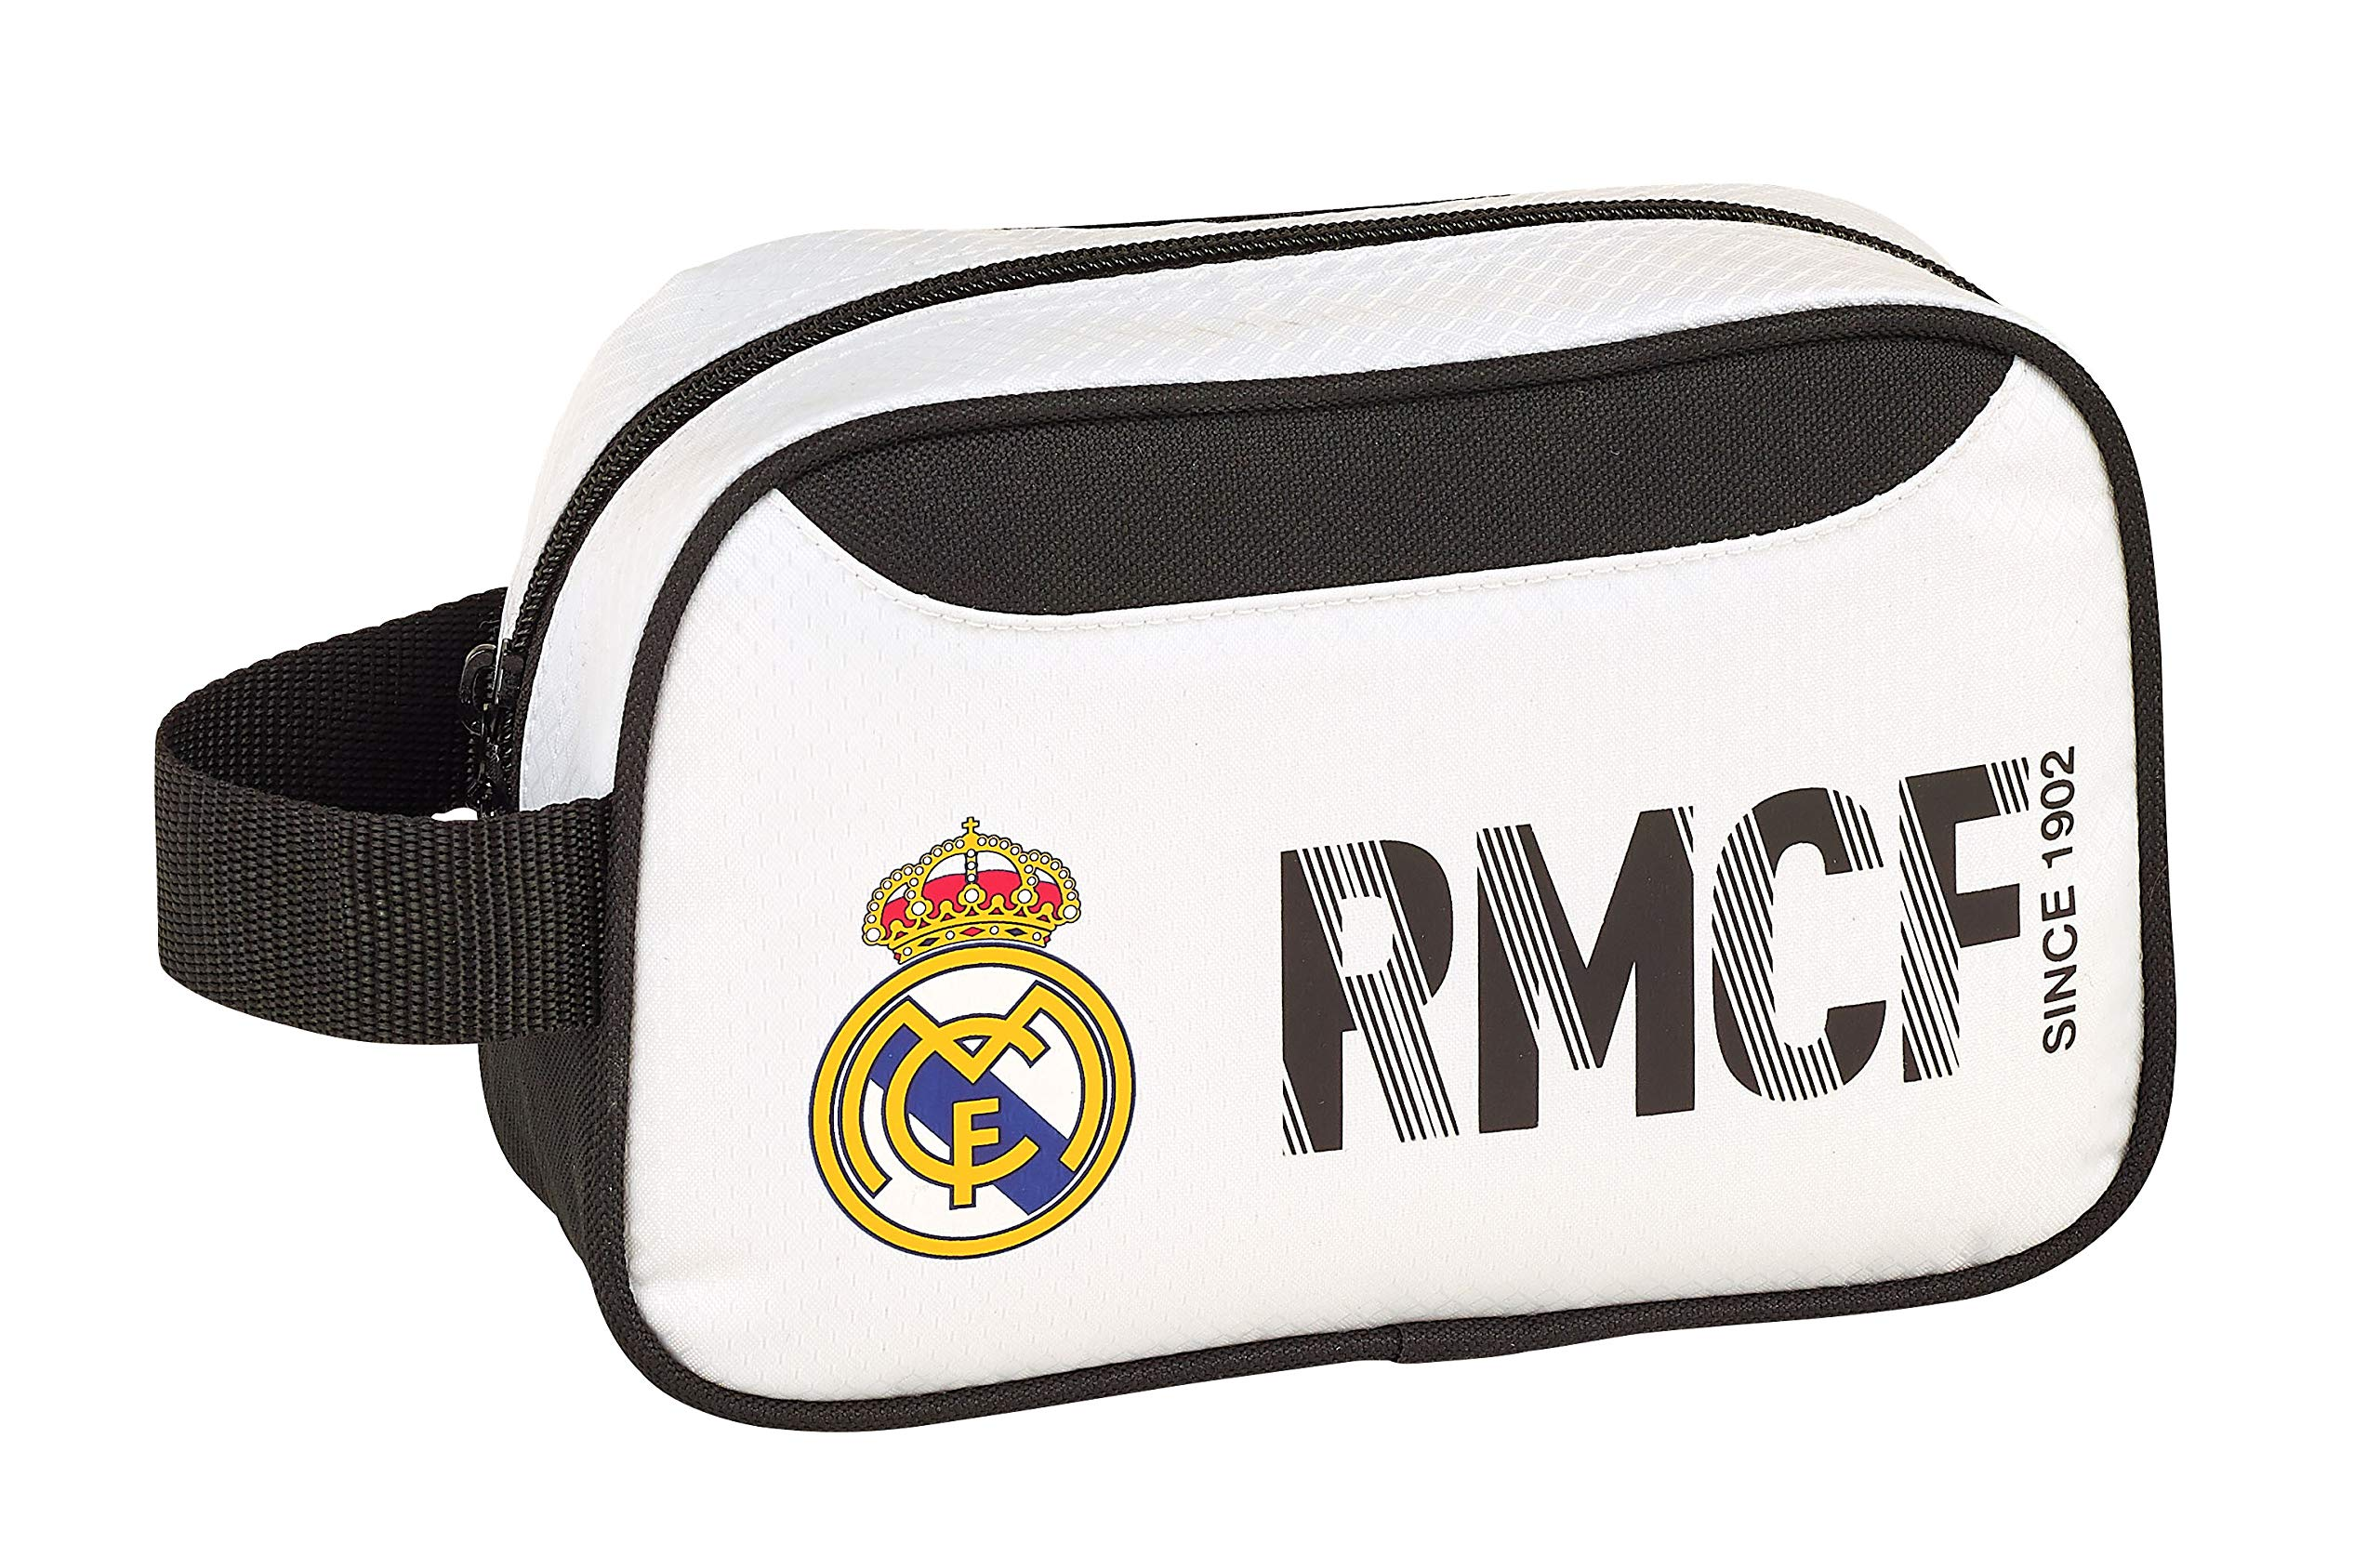 Real Madrid 811854234 2018 Bolsa de Aseo 22 cm, Blanco